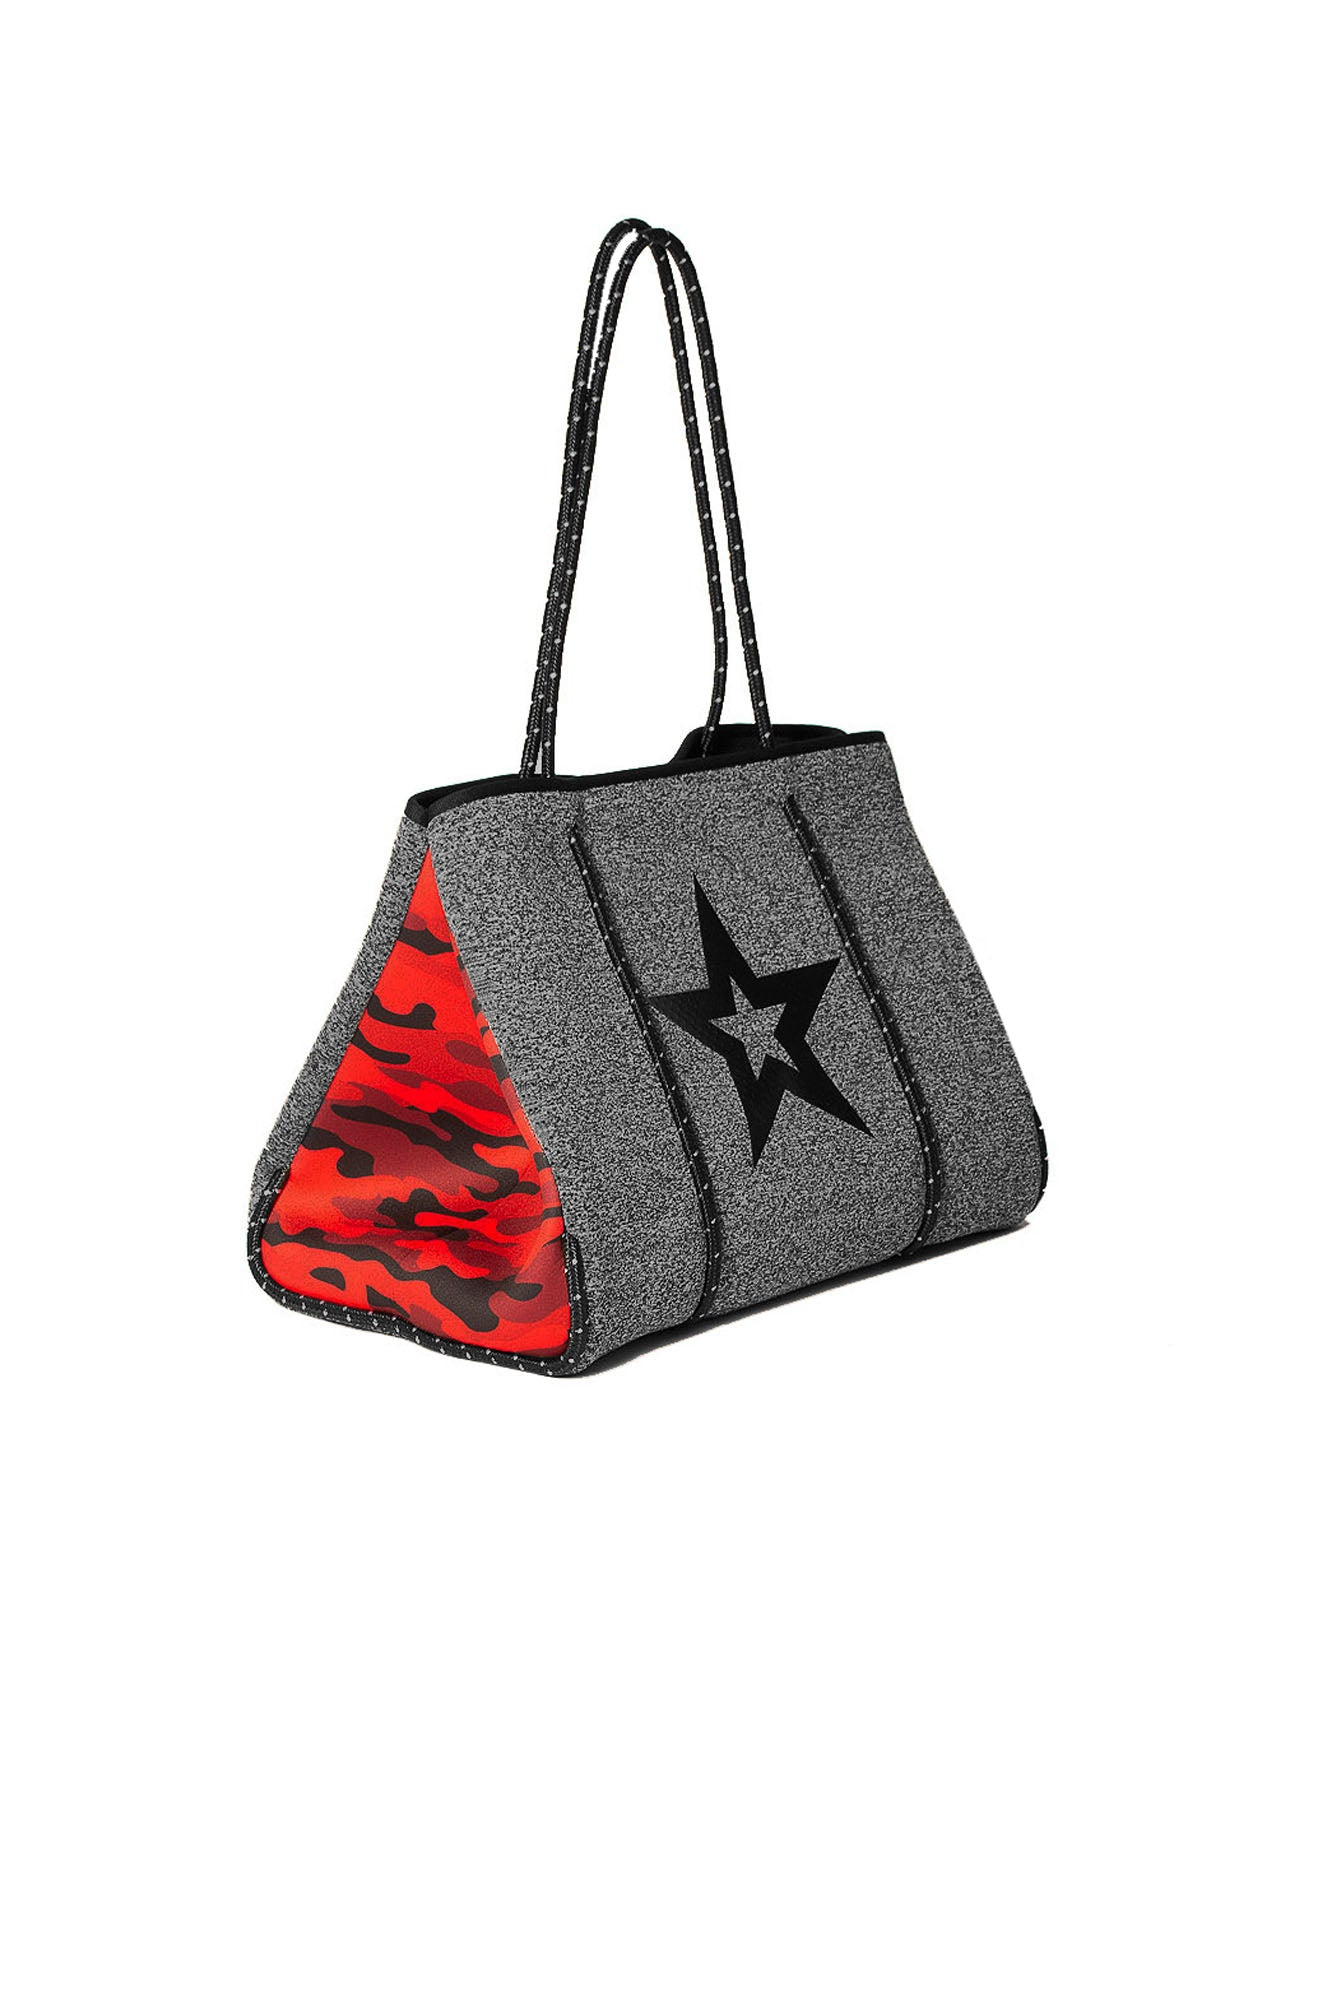 Haute Shore - Greyson Brave Neoprene Tote Bag w/Zipper Wristlet Inside (brave, Charcoal Marle/Black Star w/Red Camo Sides)